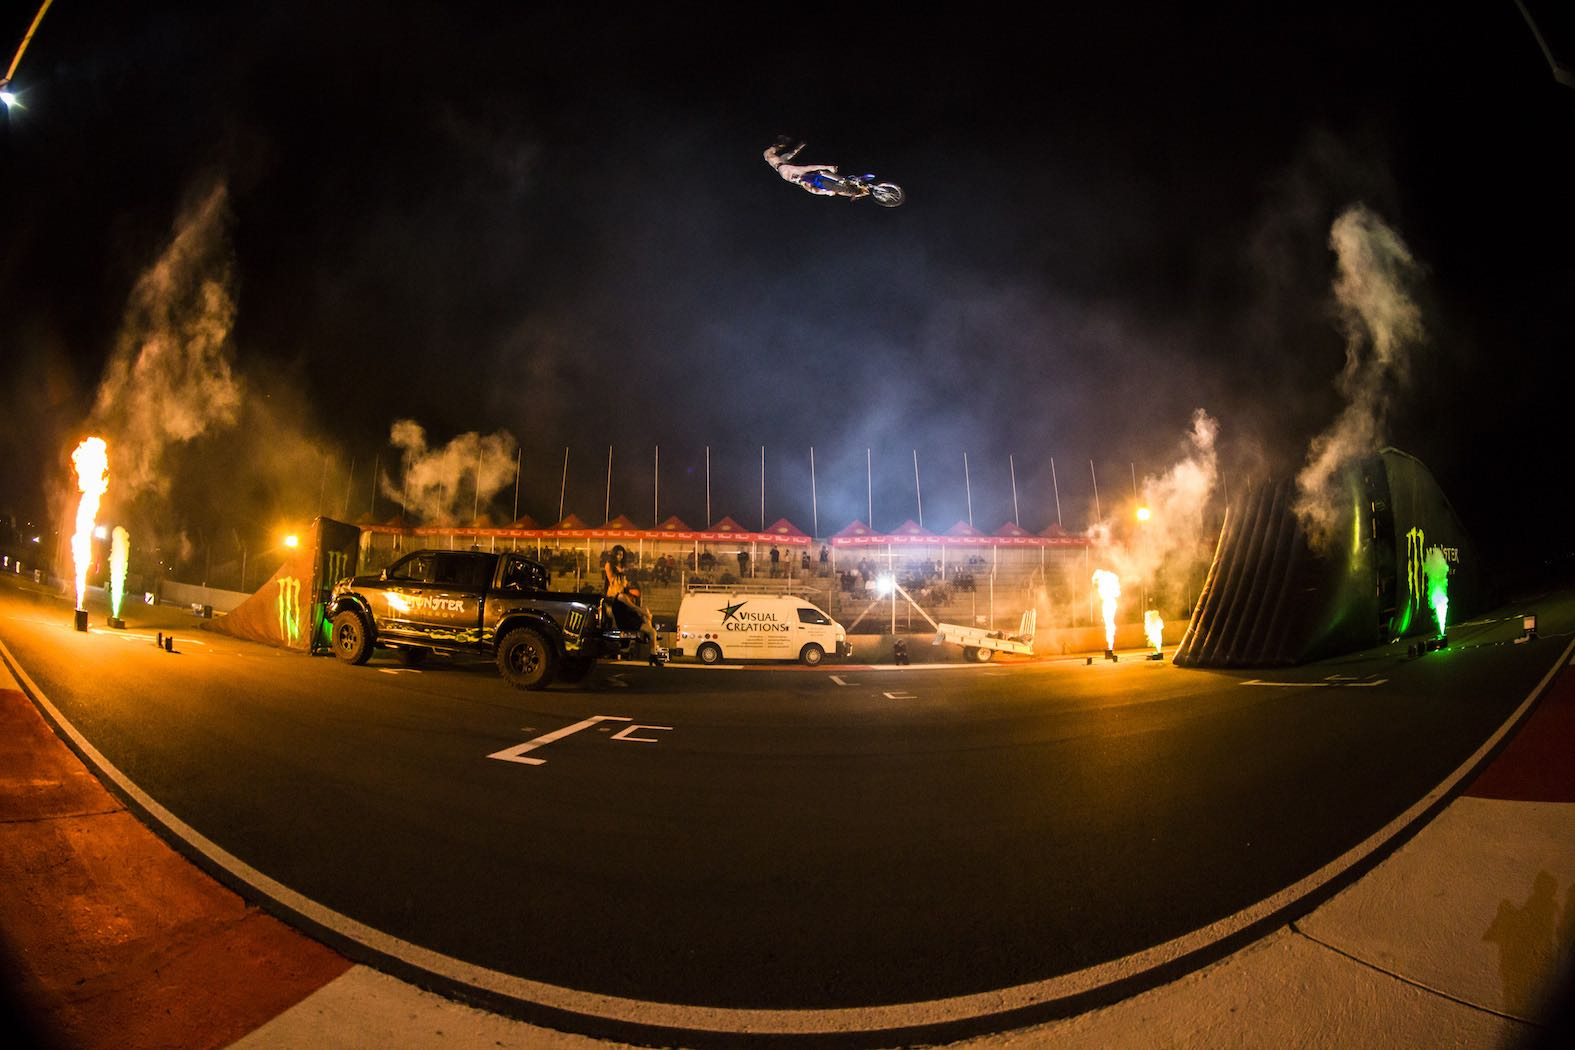 Monster Energy Freestyle Motocross Flight Night